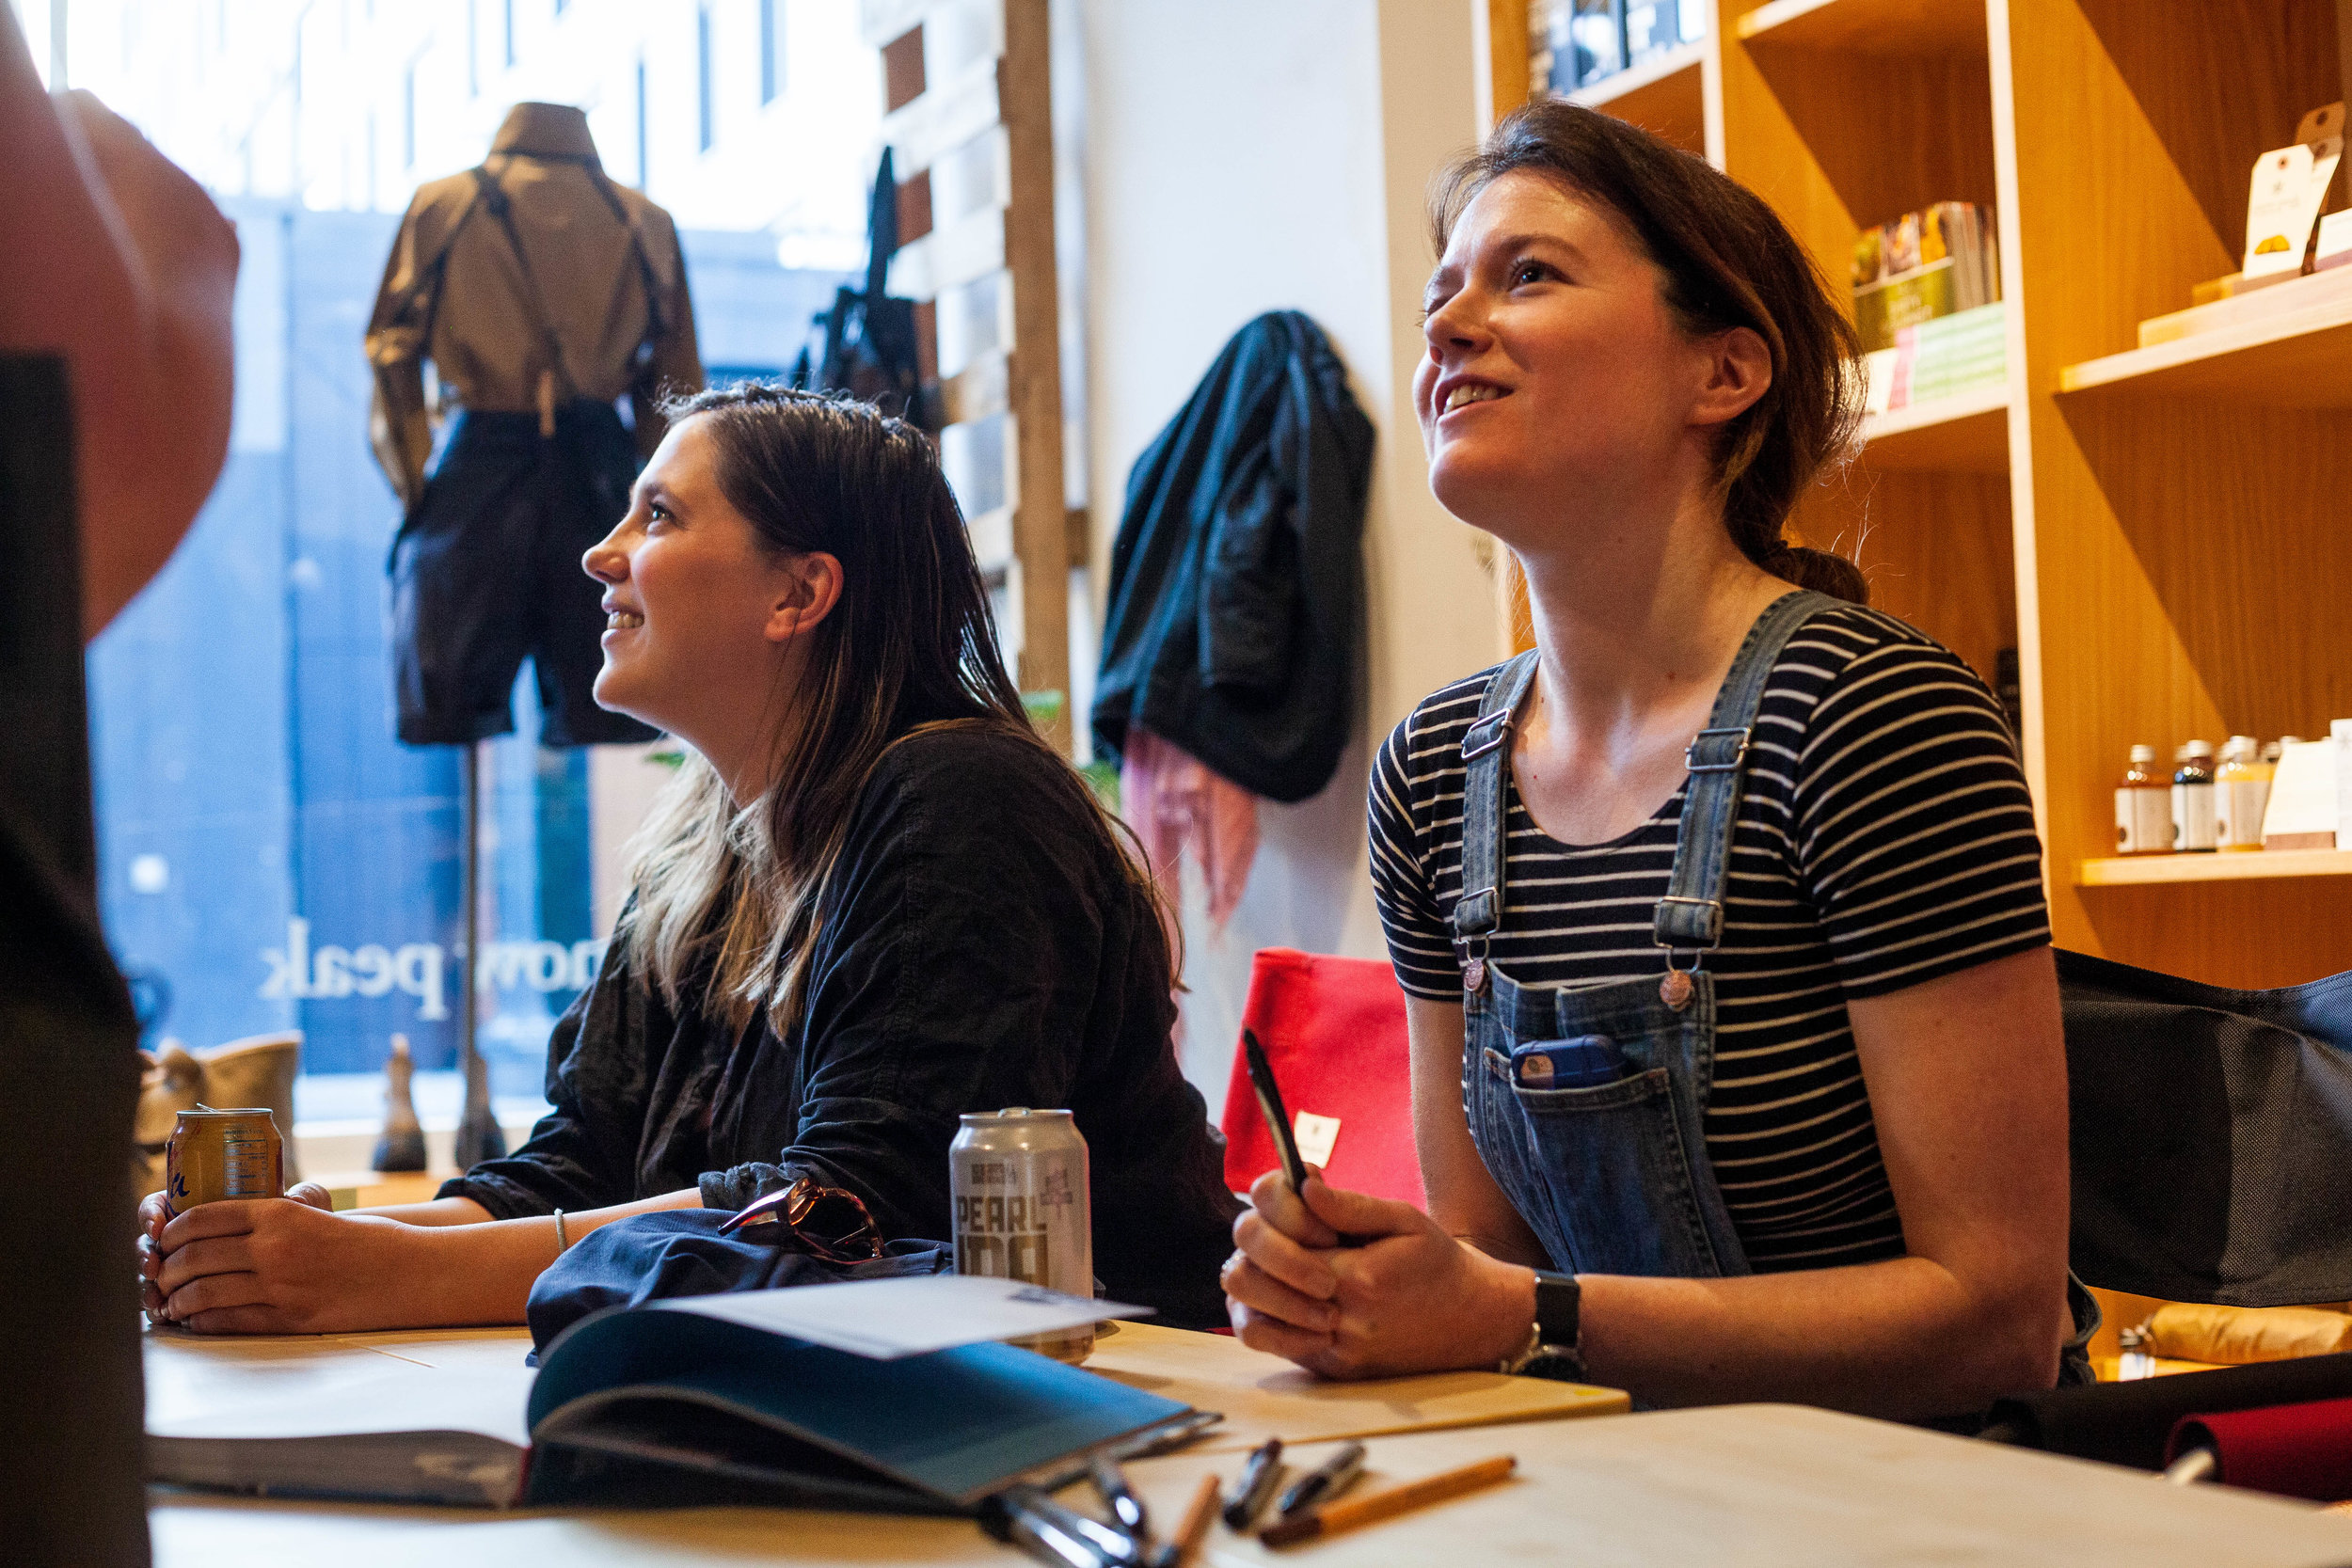 Gale signed copies of the new She Explores book at the launch. Photo courtesy of Anna Brones.